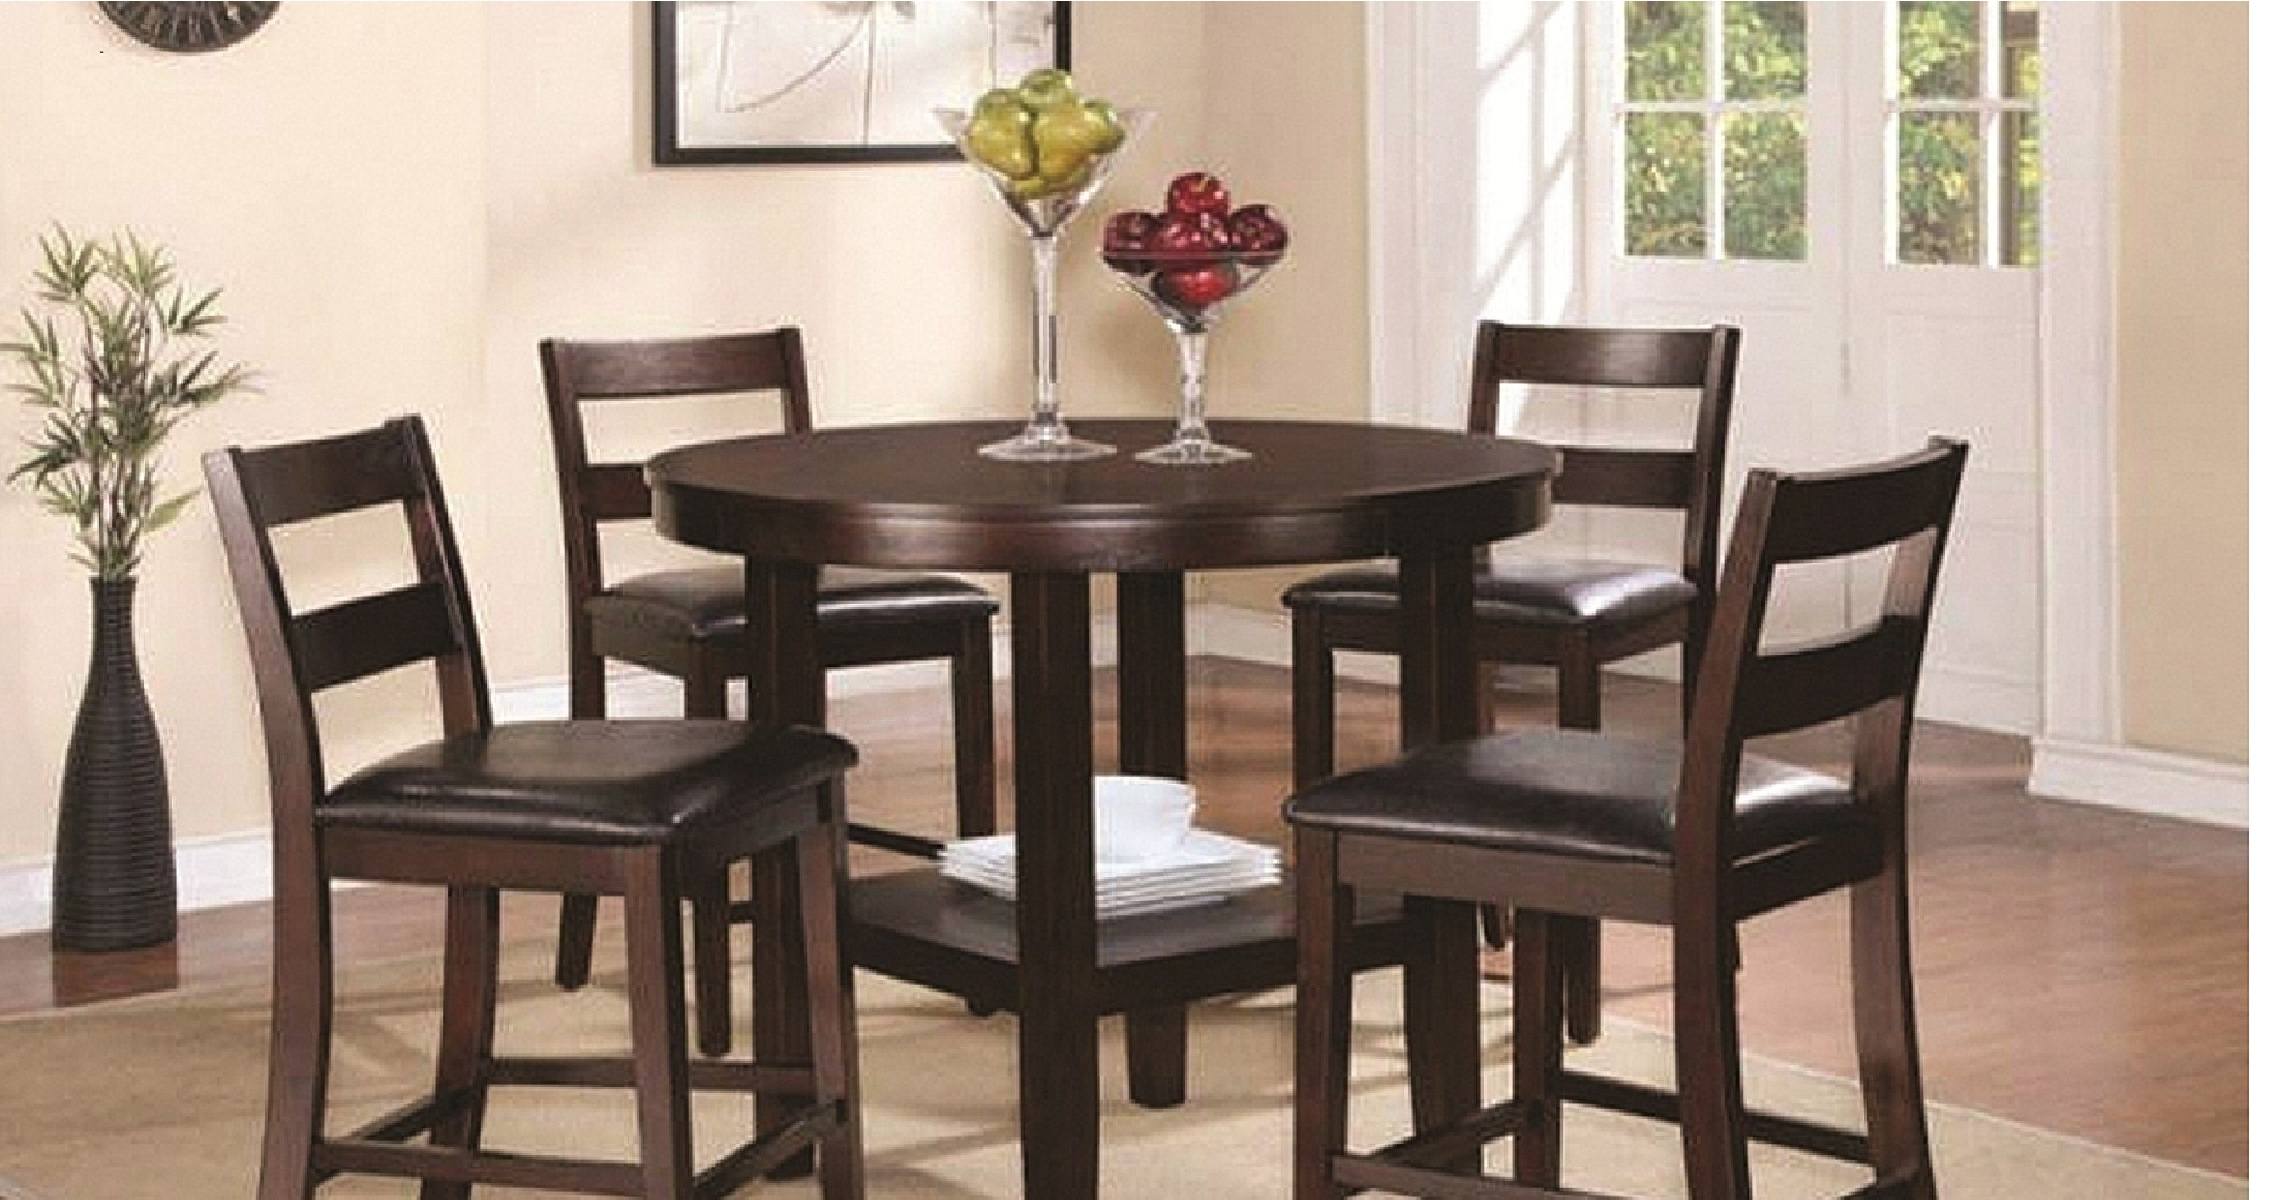 5-Piece-Counter-High-Dining-Set-Dining-Table-and-4-Barstools-